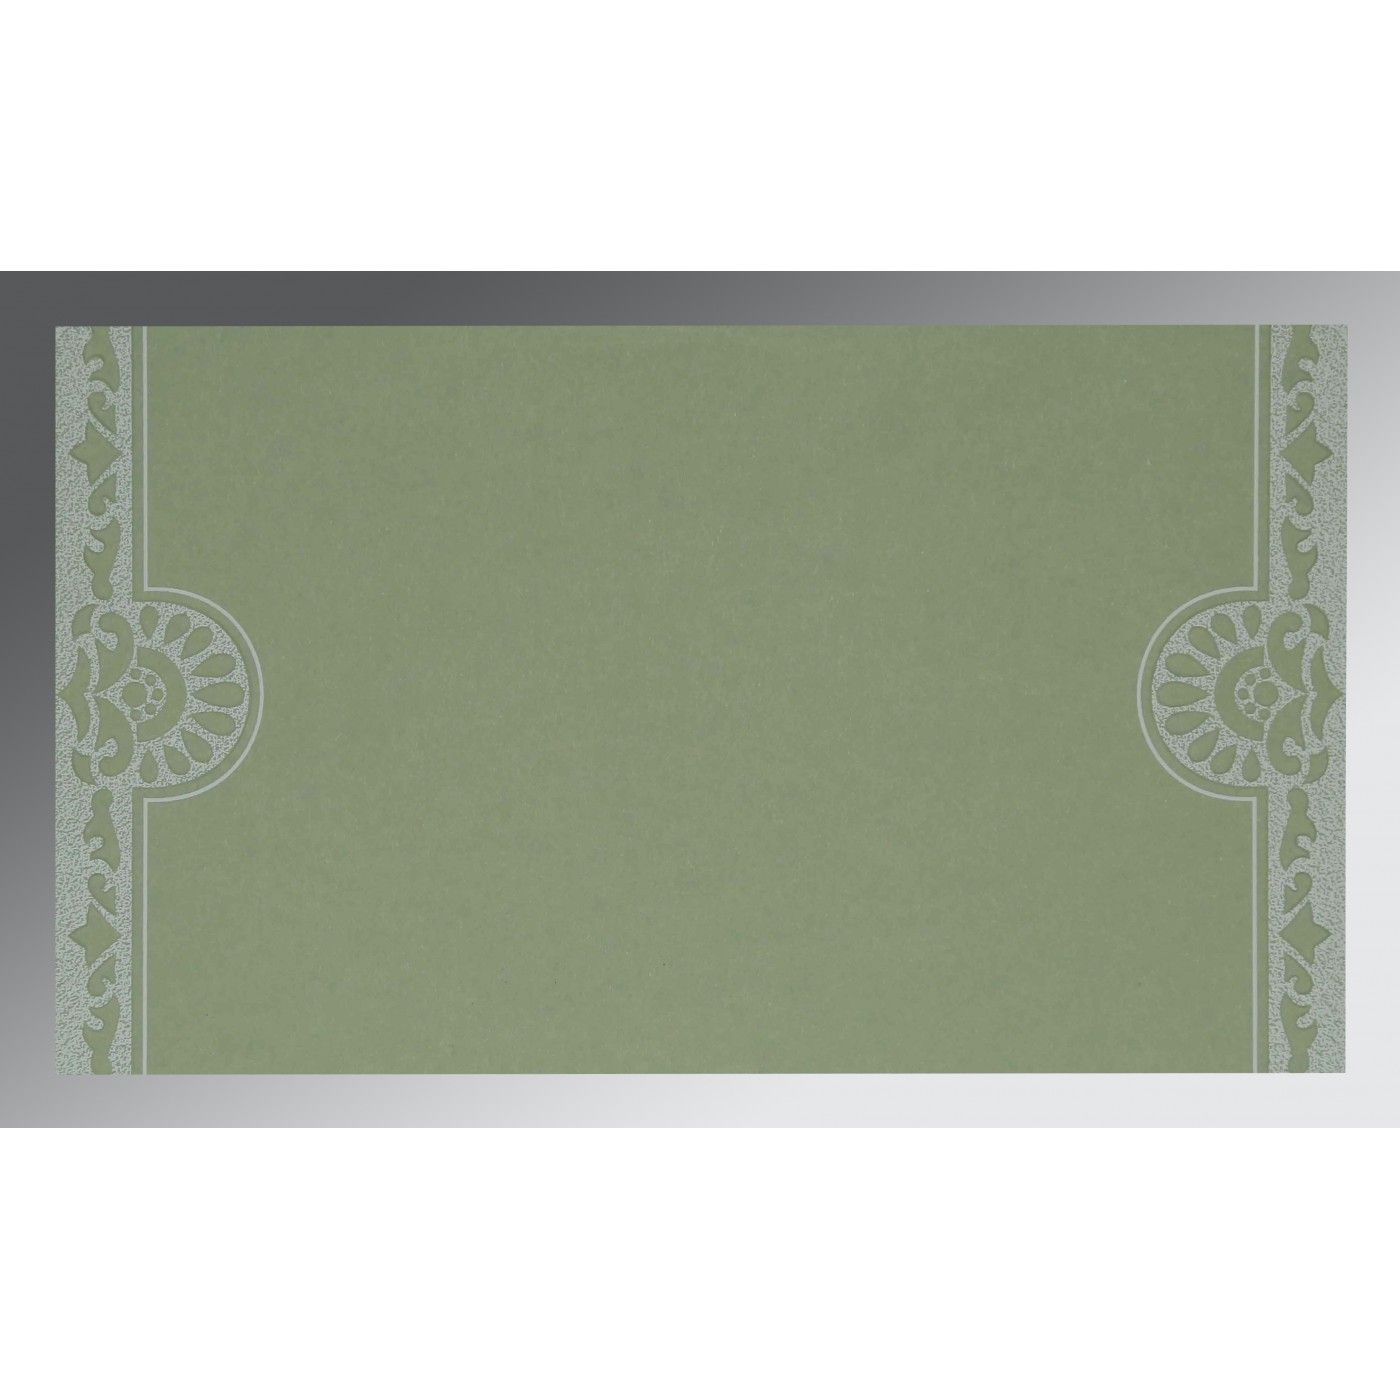 OFF-WHITE SHIMMERY FLORAL THEMED - SCREEN PRINTED WEDDING CARD : CIN-8227J - IndianWeddingCards